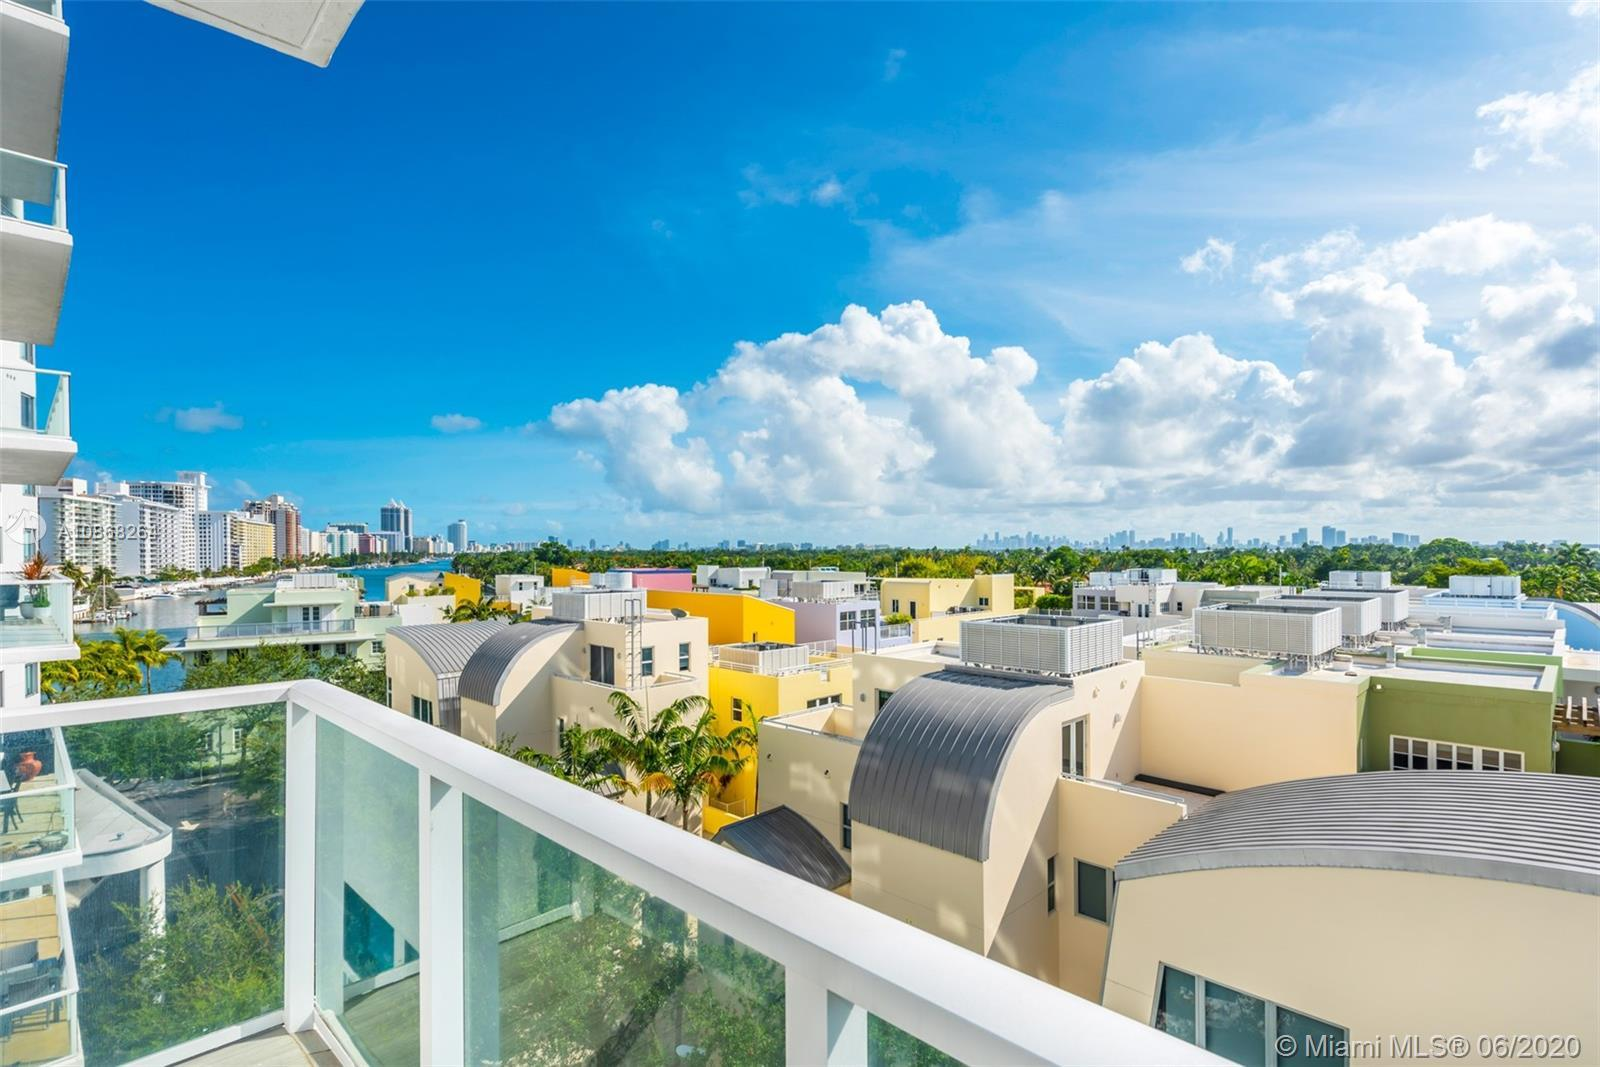 Live on a Private Island! This spacious and modern 3-bedroom/3.5-bathroom residence features high ce